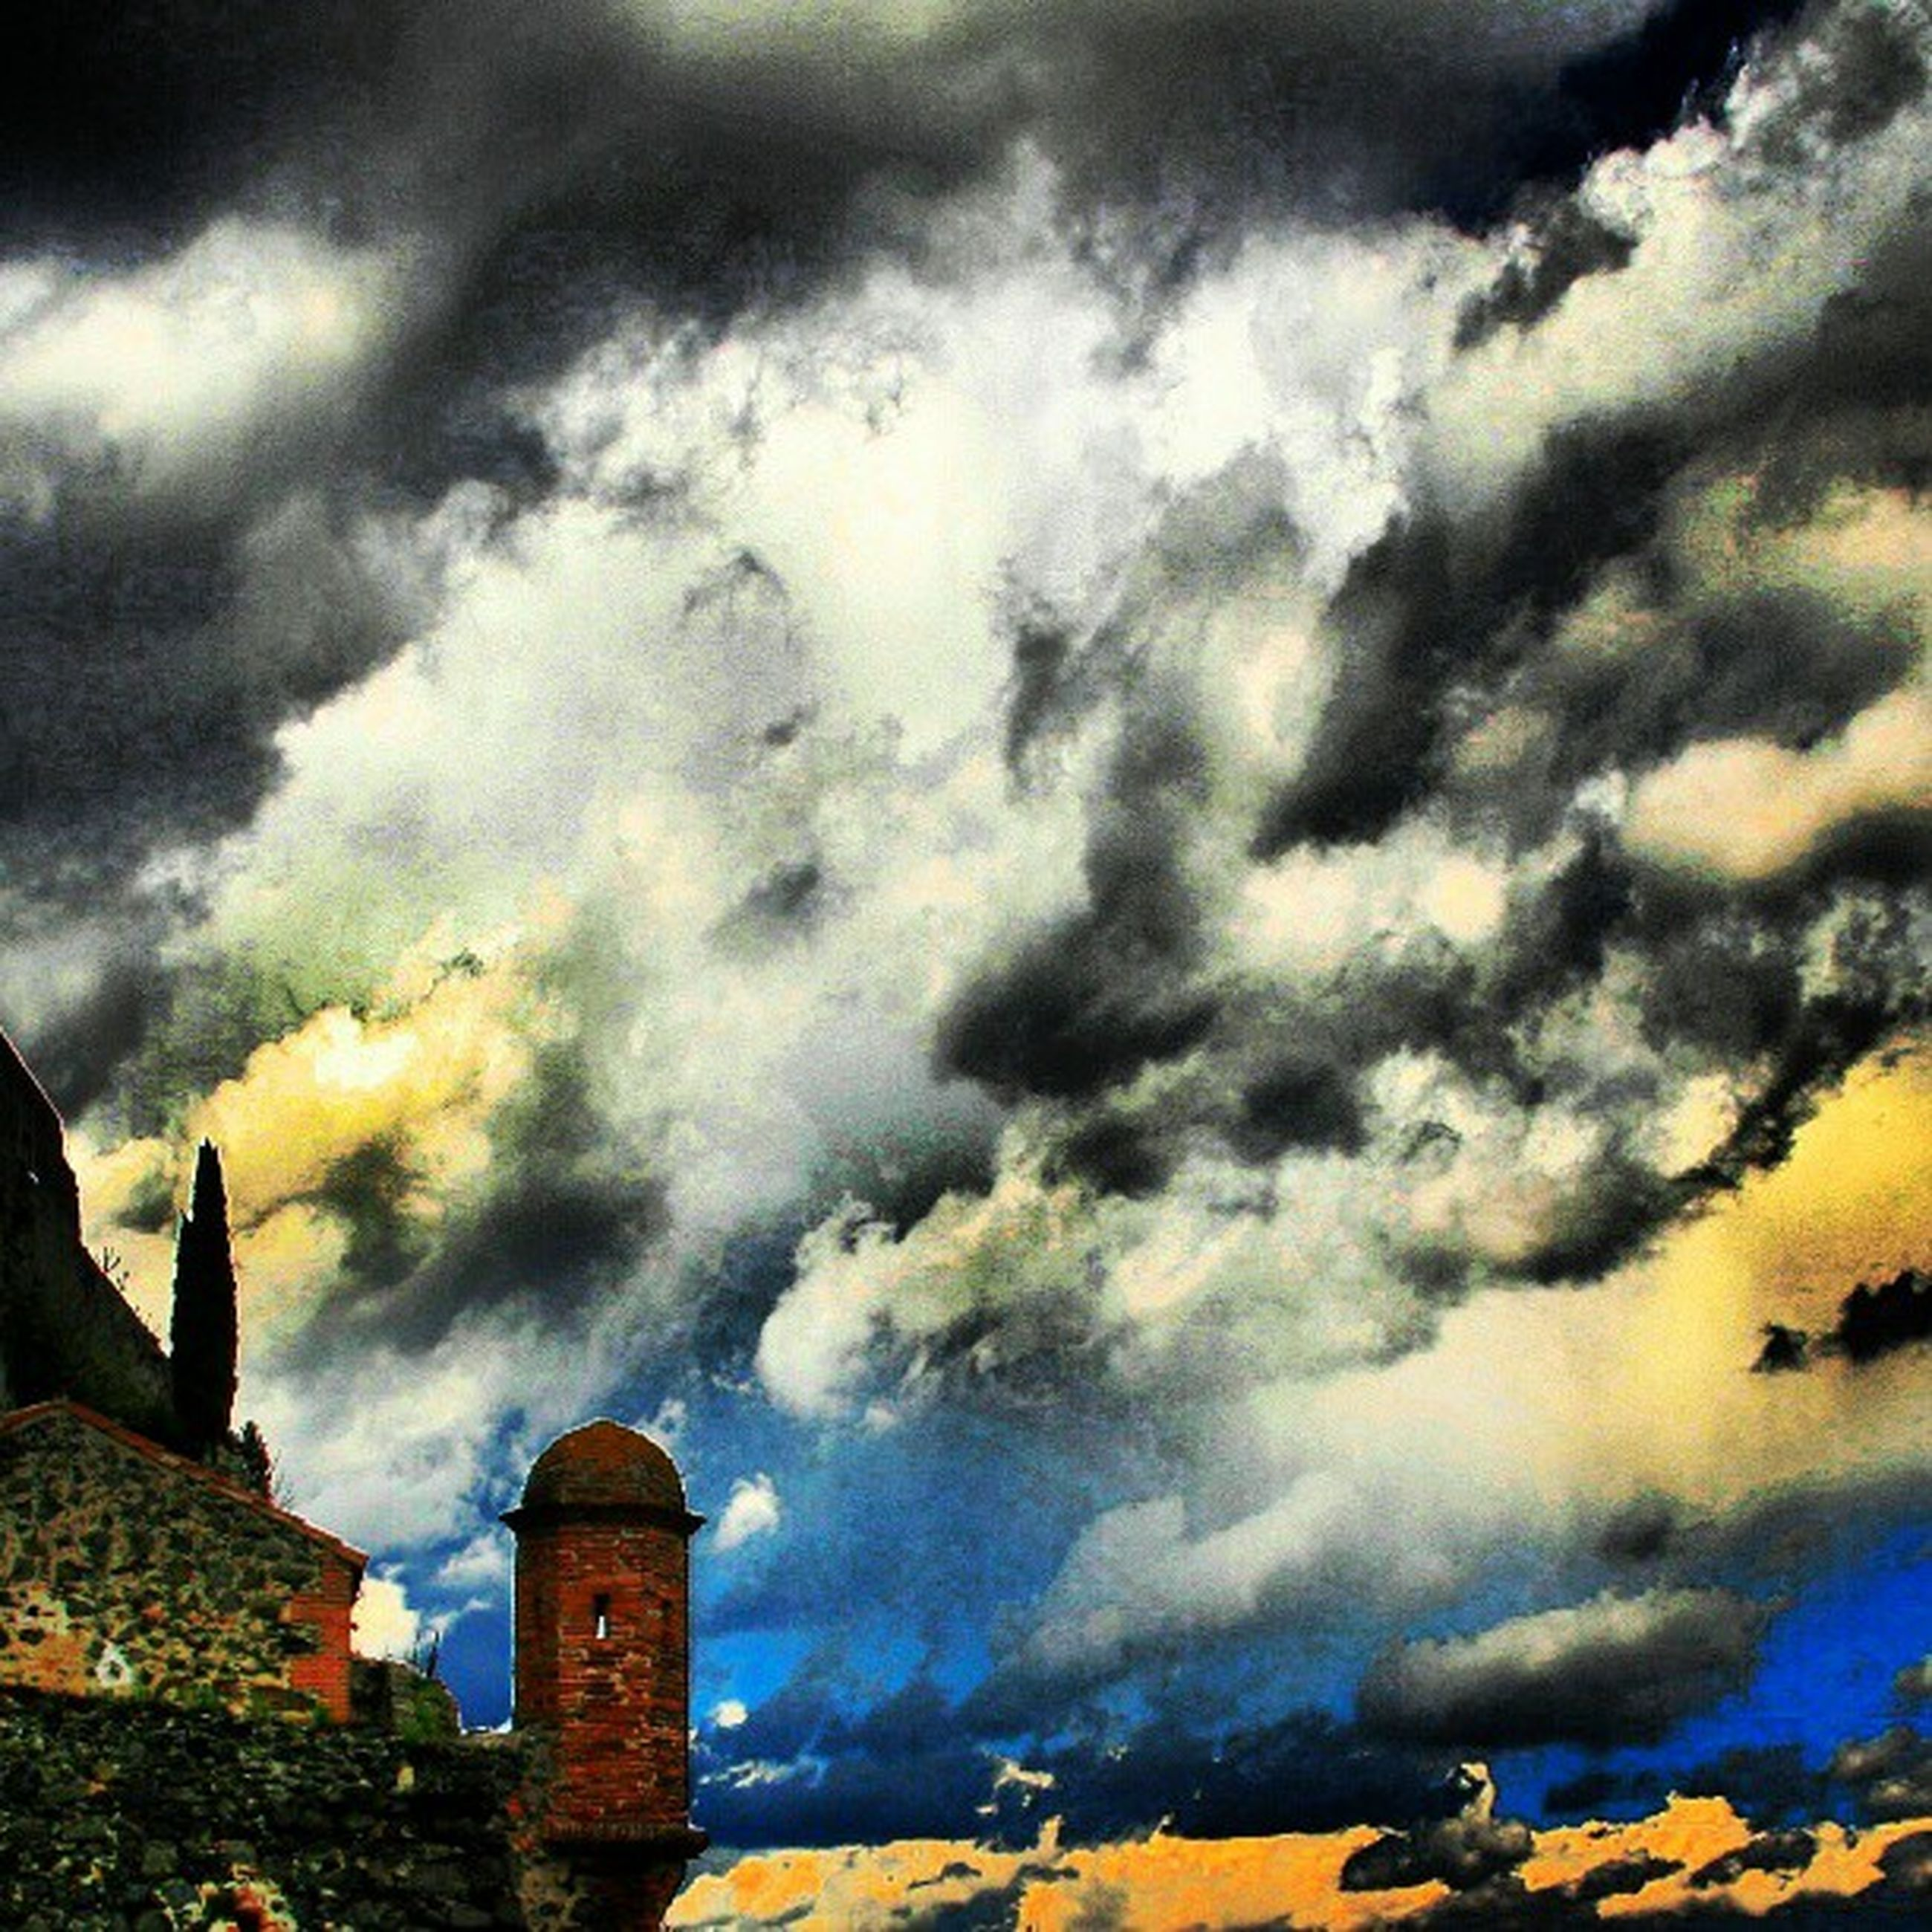 cloud - sky, sky, cloudy, building exterior, architecture, built structure, weather, overcast, low angle view, dramatic sky, storm cloud, cloud, cloudscape, sunset, nature, building, outdoors, no people, atmospheric mood, beauty in nature